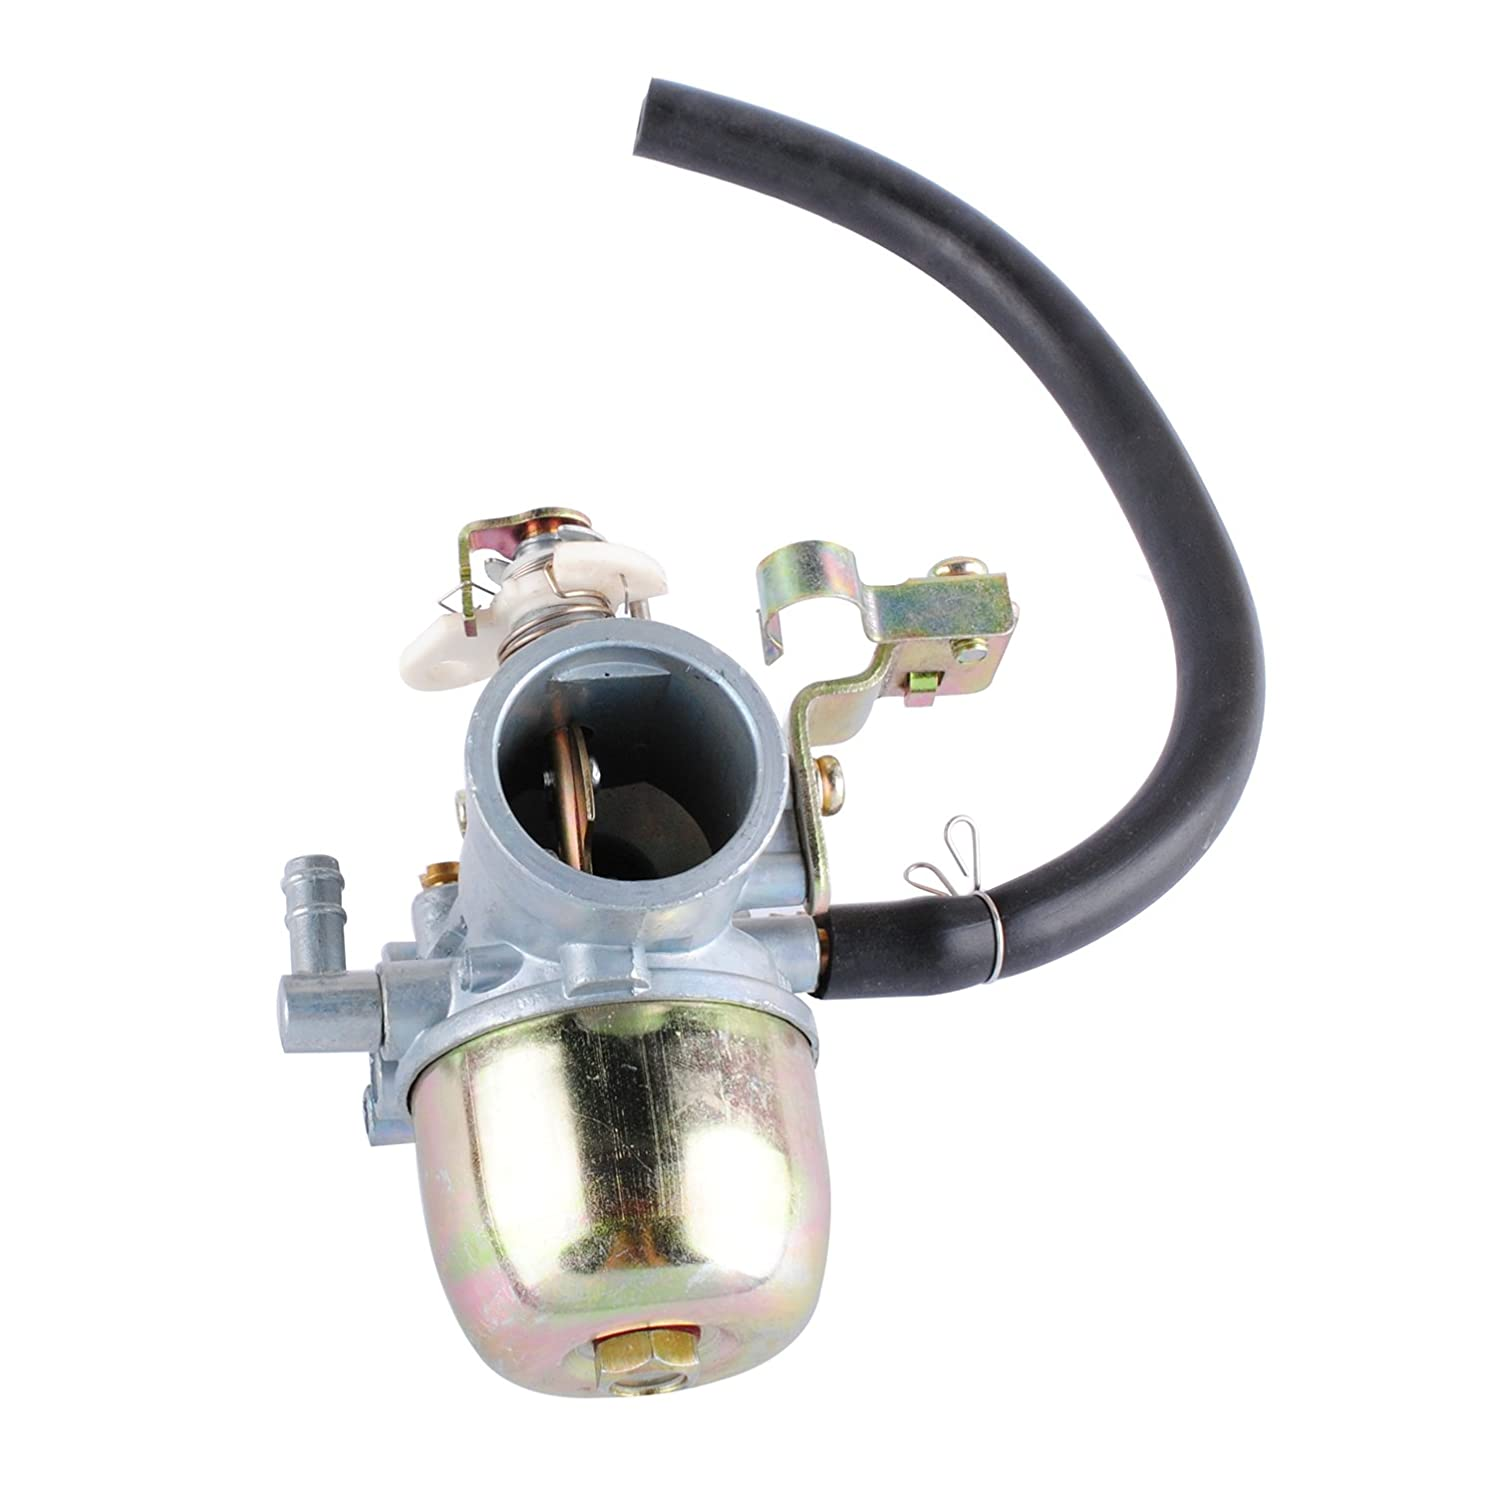 Ketofa Yamaha Replacement Carburetor Assembly G1 Golf 1981 Gas Cart Wiring 2 Cycle Stroke Engines Carb 1983 1989 For Sports Outdoors